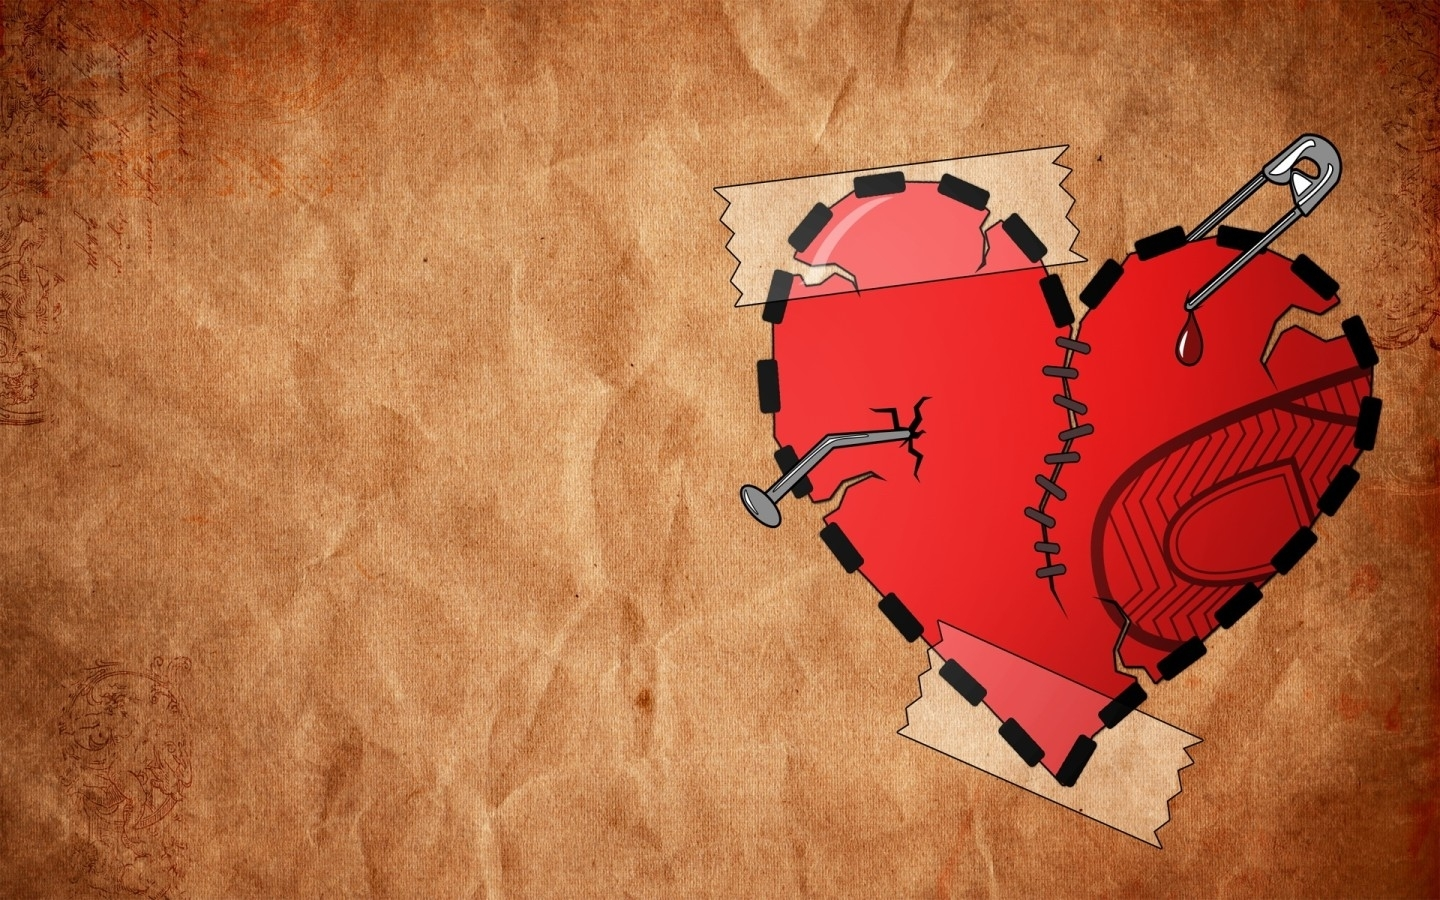 41502 download wallpaper Background, Hearts, Pictures screensavers and pictures for free